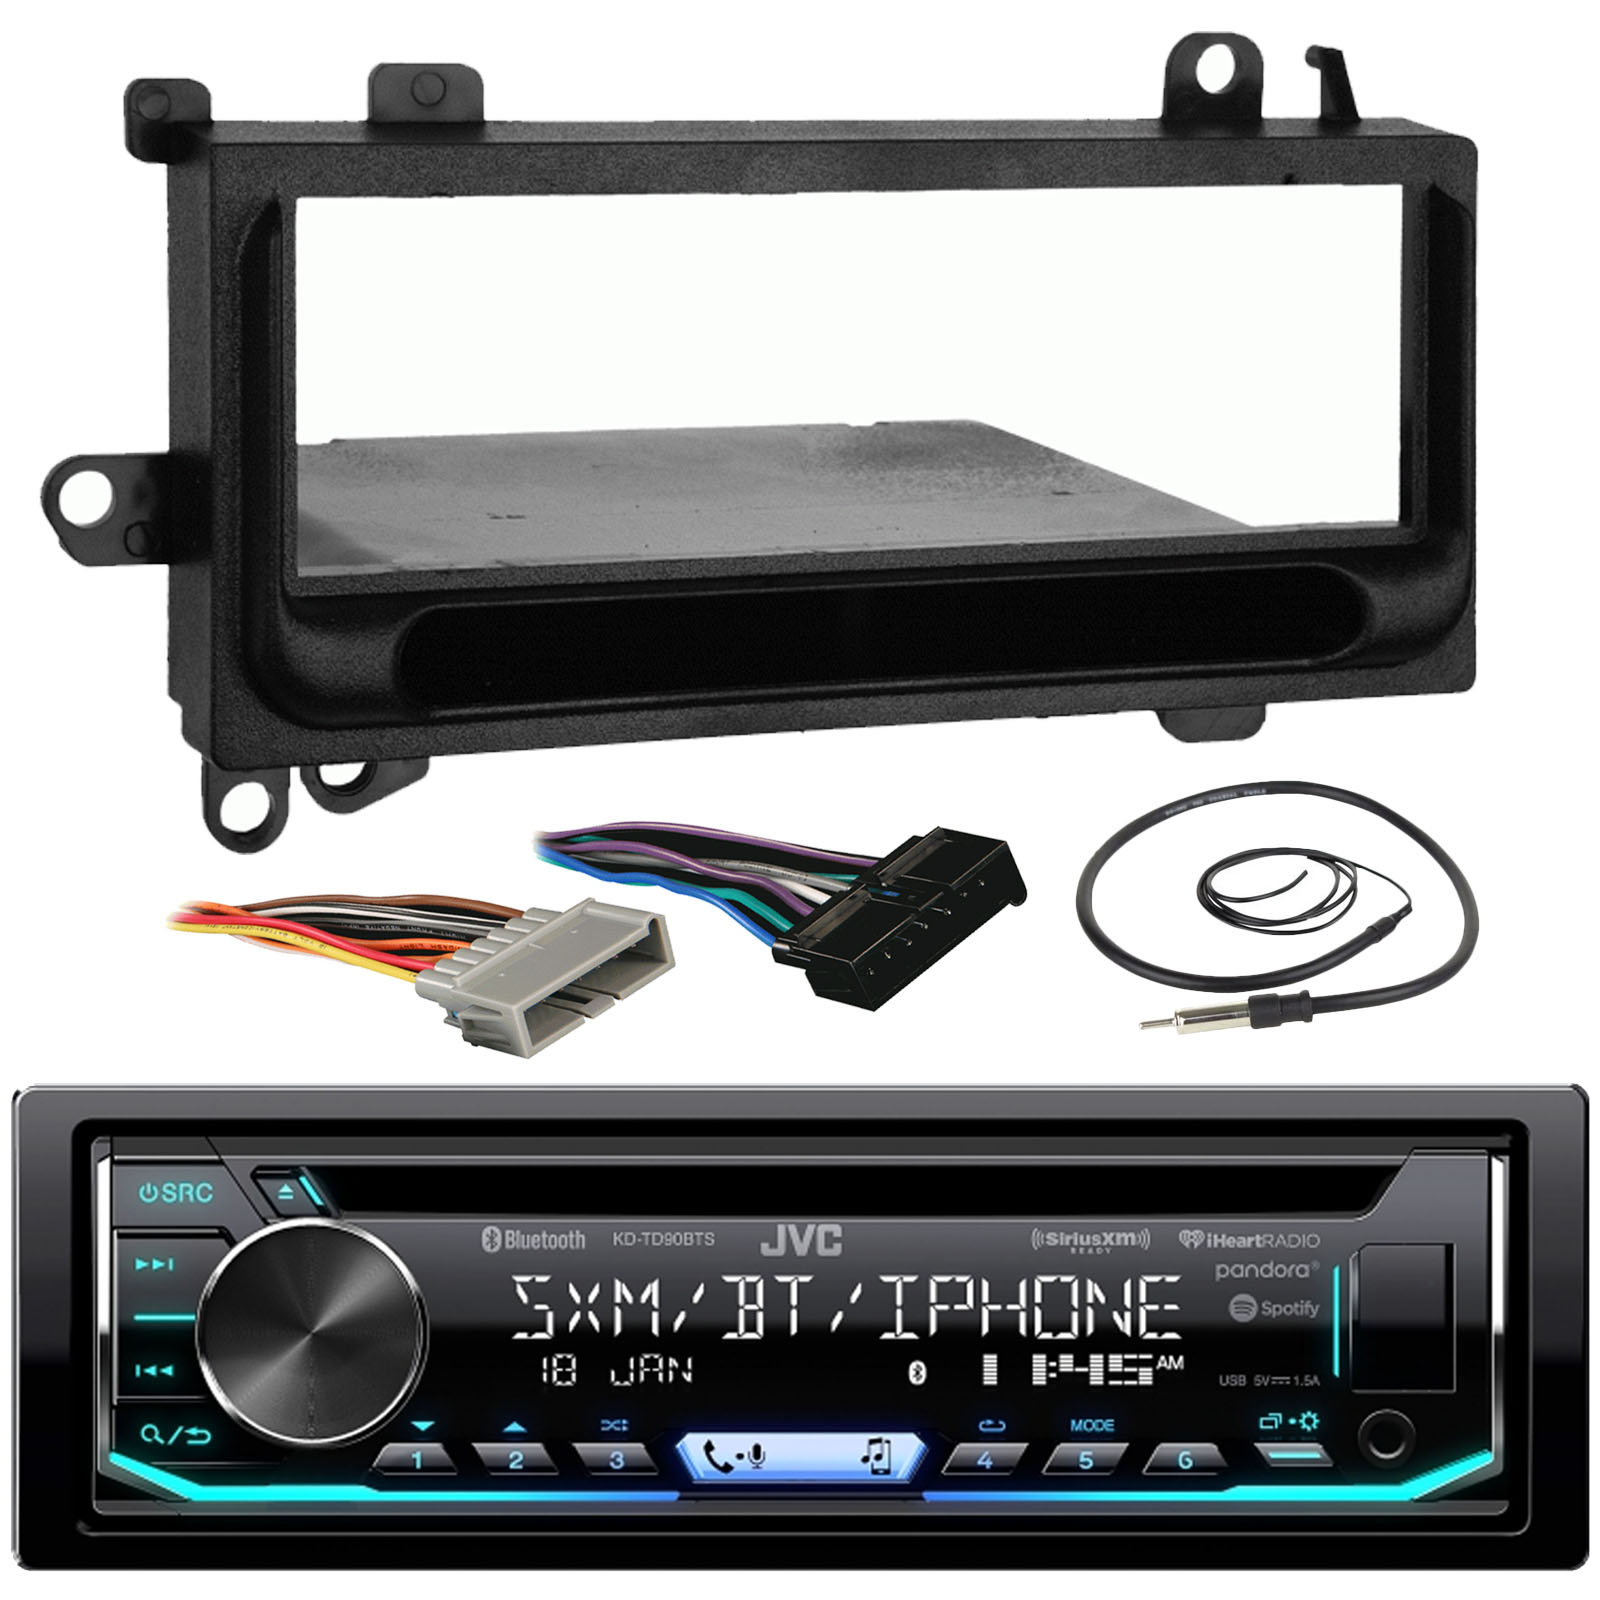 hight resolution of jvc kd td90bts car cd mp3 ipod bluetooth stereo receiver bundle combo w metra installation kit for 1974 and up chrysler dodge jeep cars radio wiring